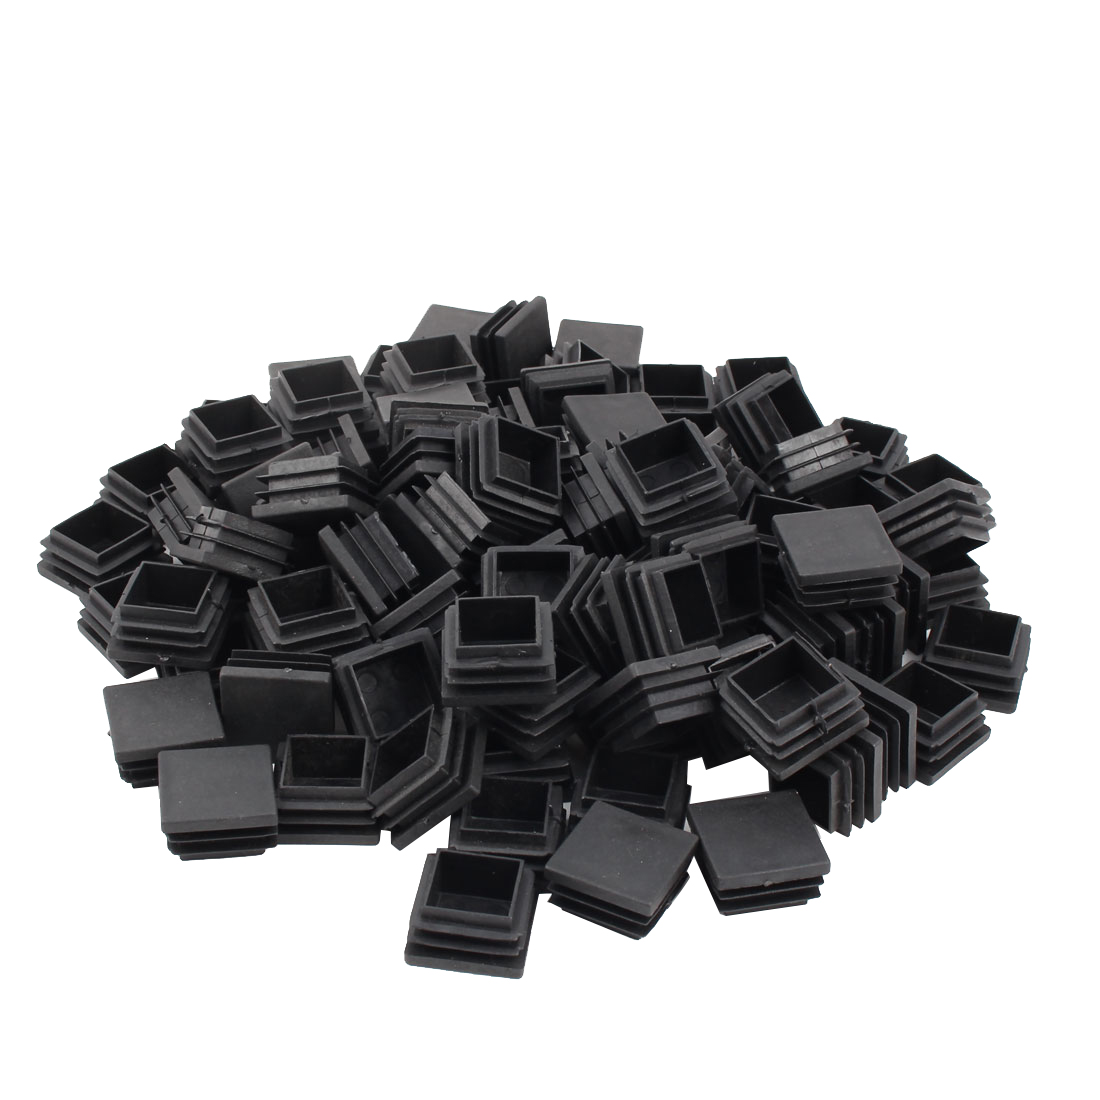 Furniture Table Chair Plastic Square Leg Tube Pipe Insert End Cap Black 32mm x 32mm 100pcs